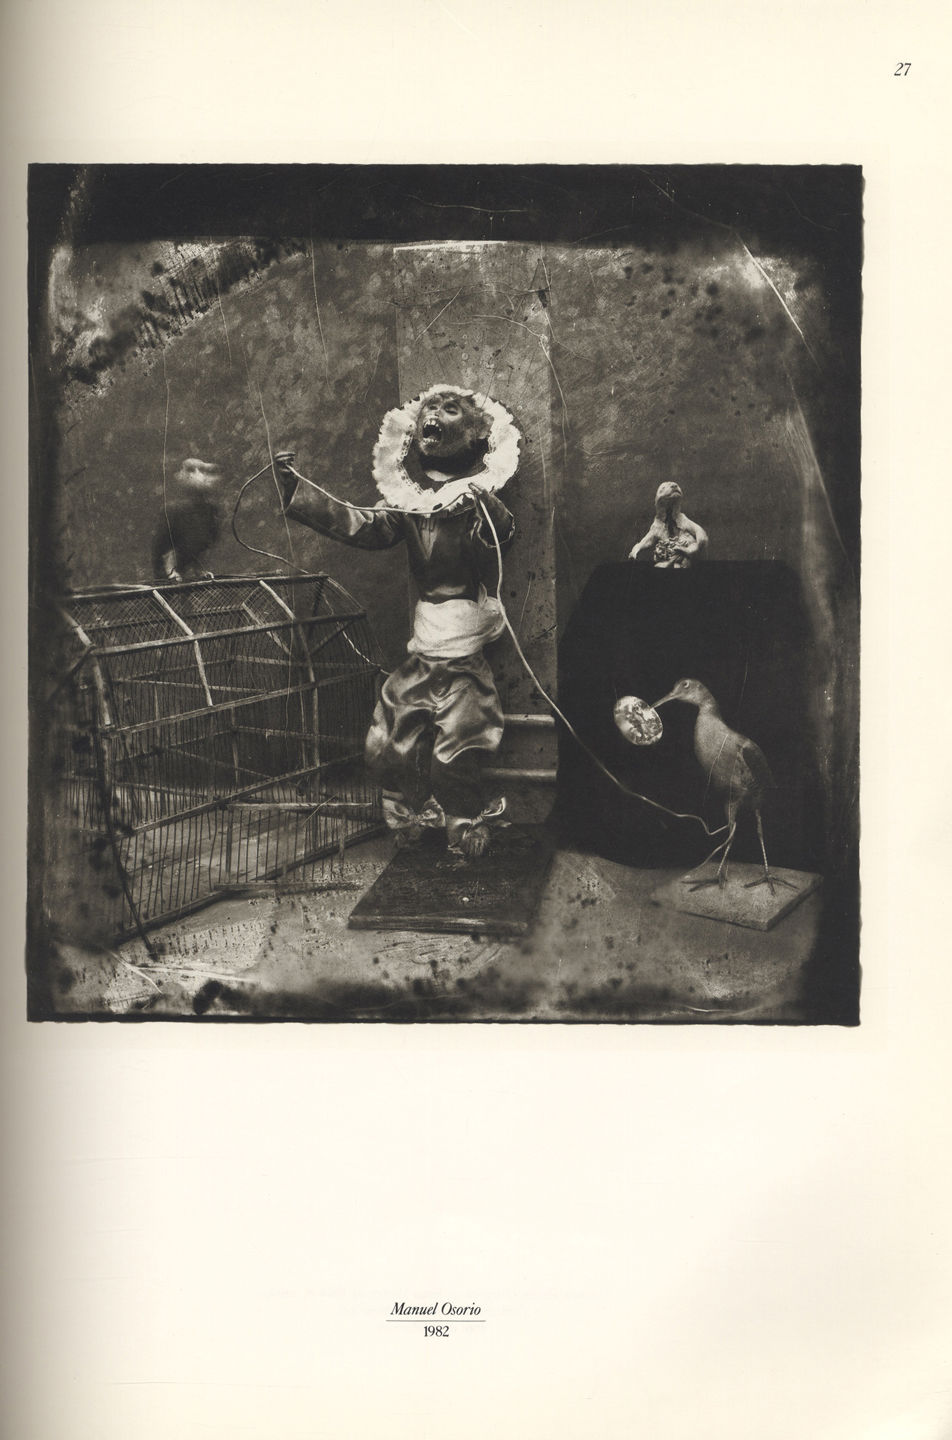 Joel-Peter Witkin: Forty Photographs